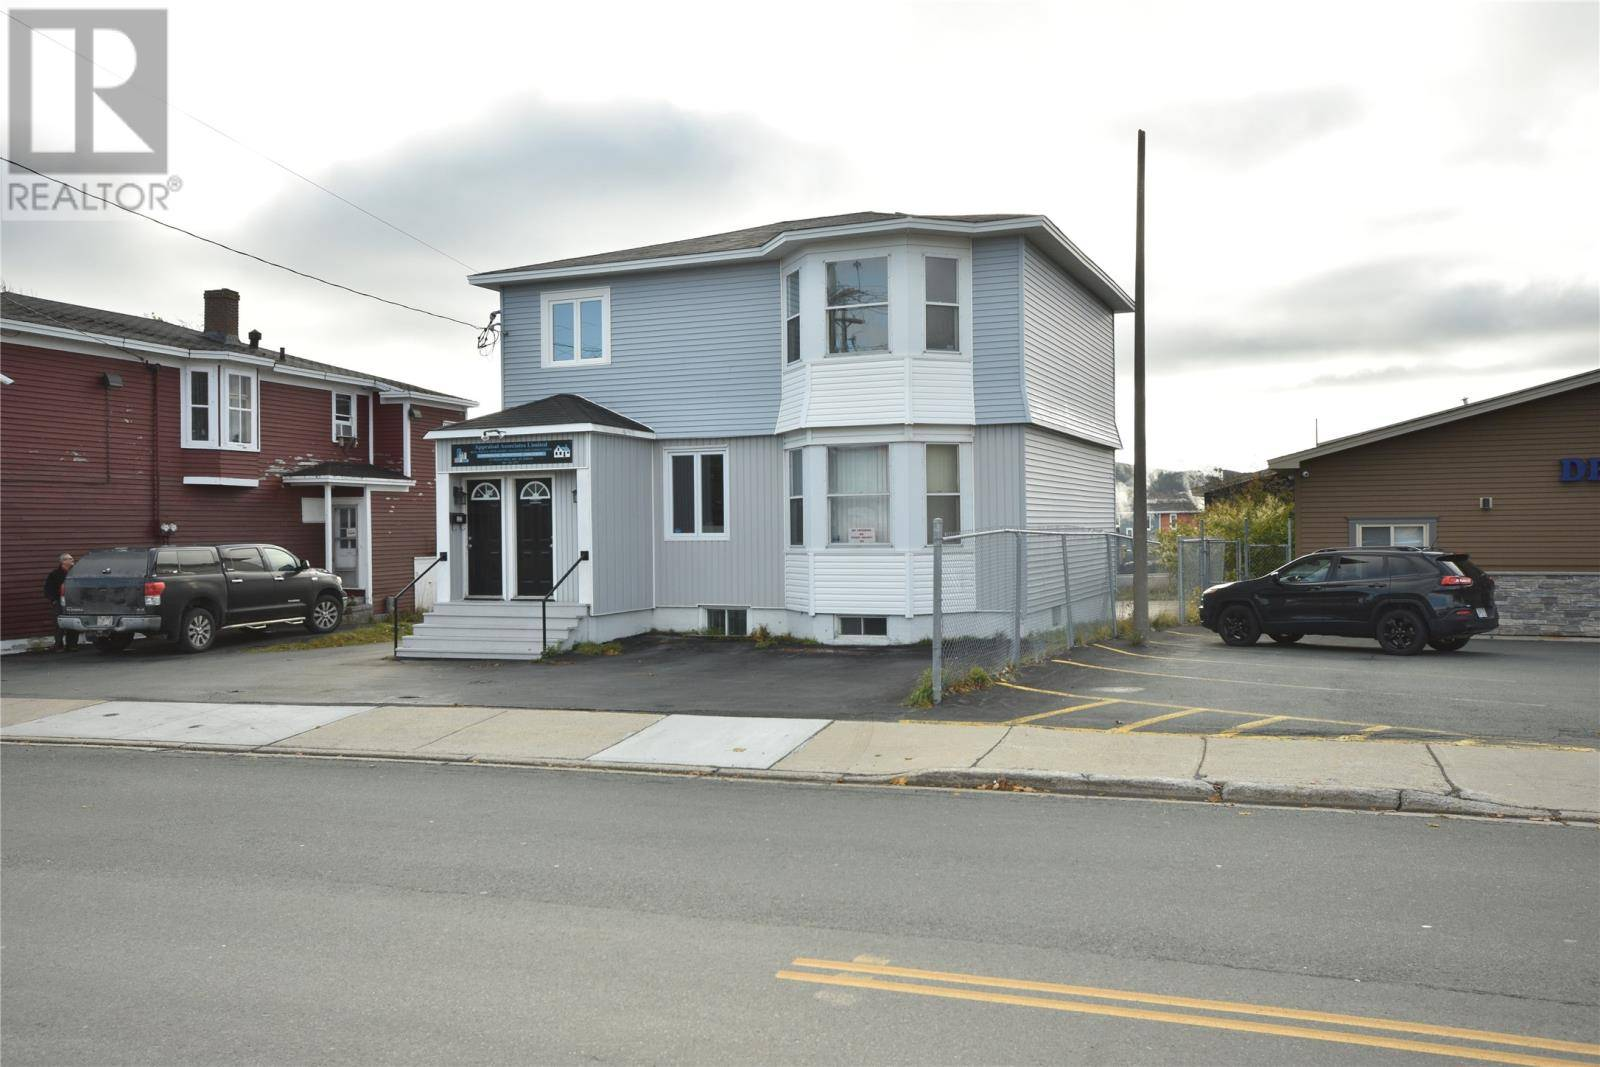 Residential property for sale at 157 Pennywell Rd St Johns Newfoundland - MLS: 1209267